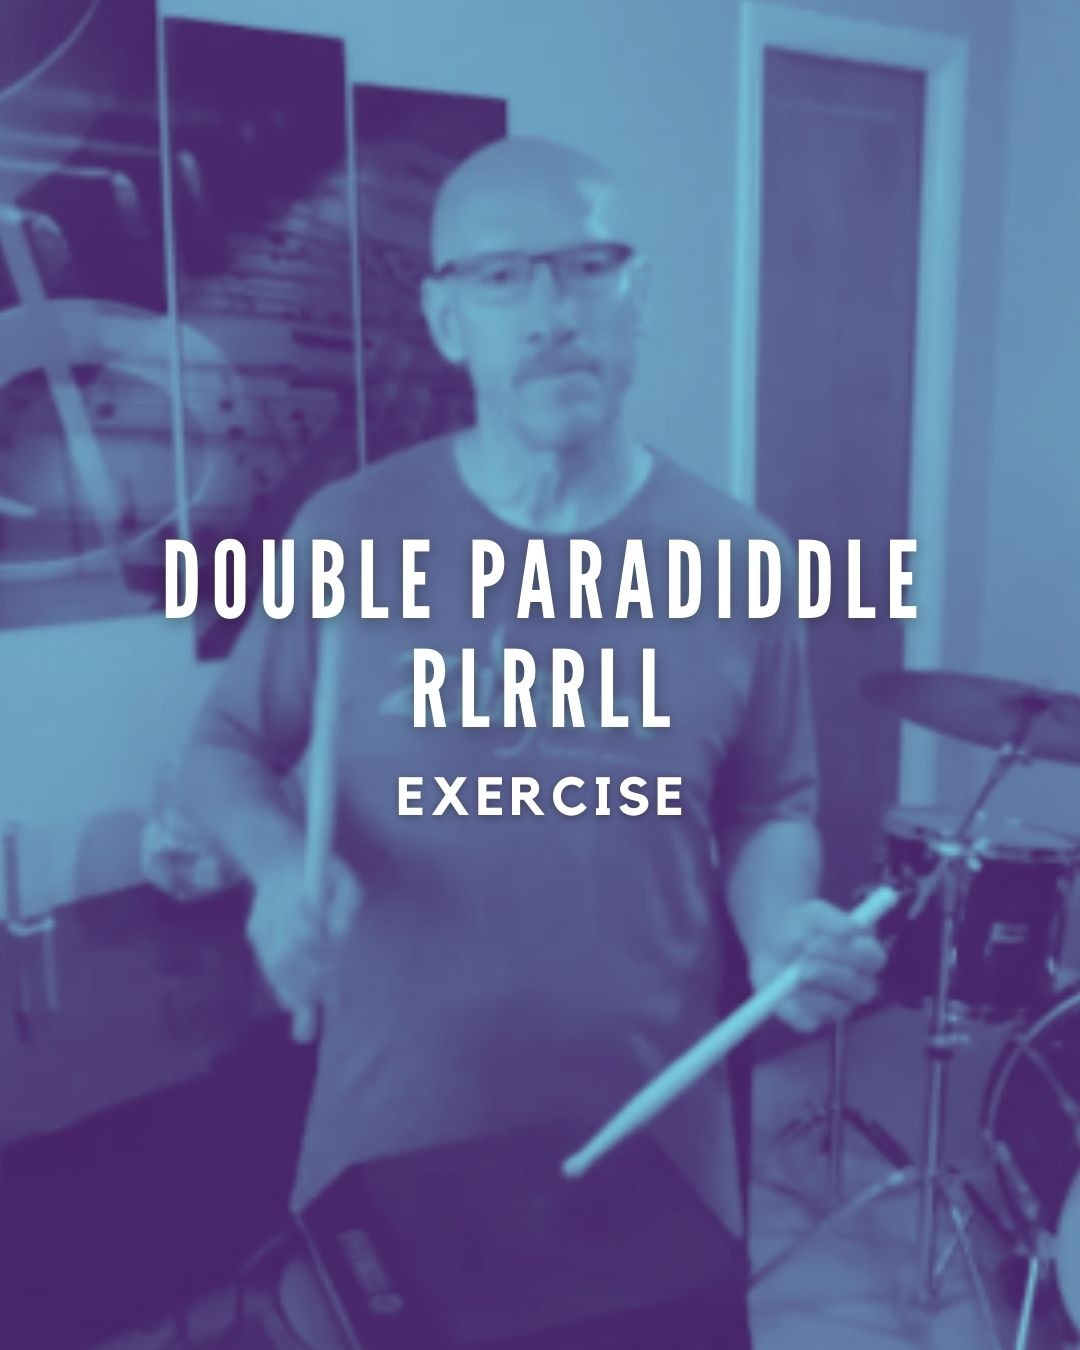 Double Paradiddle RLRRLL